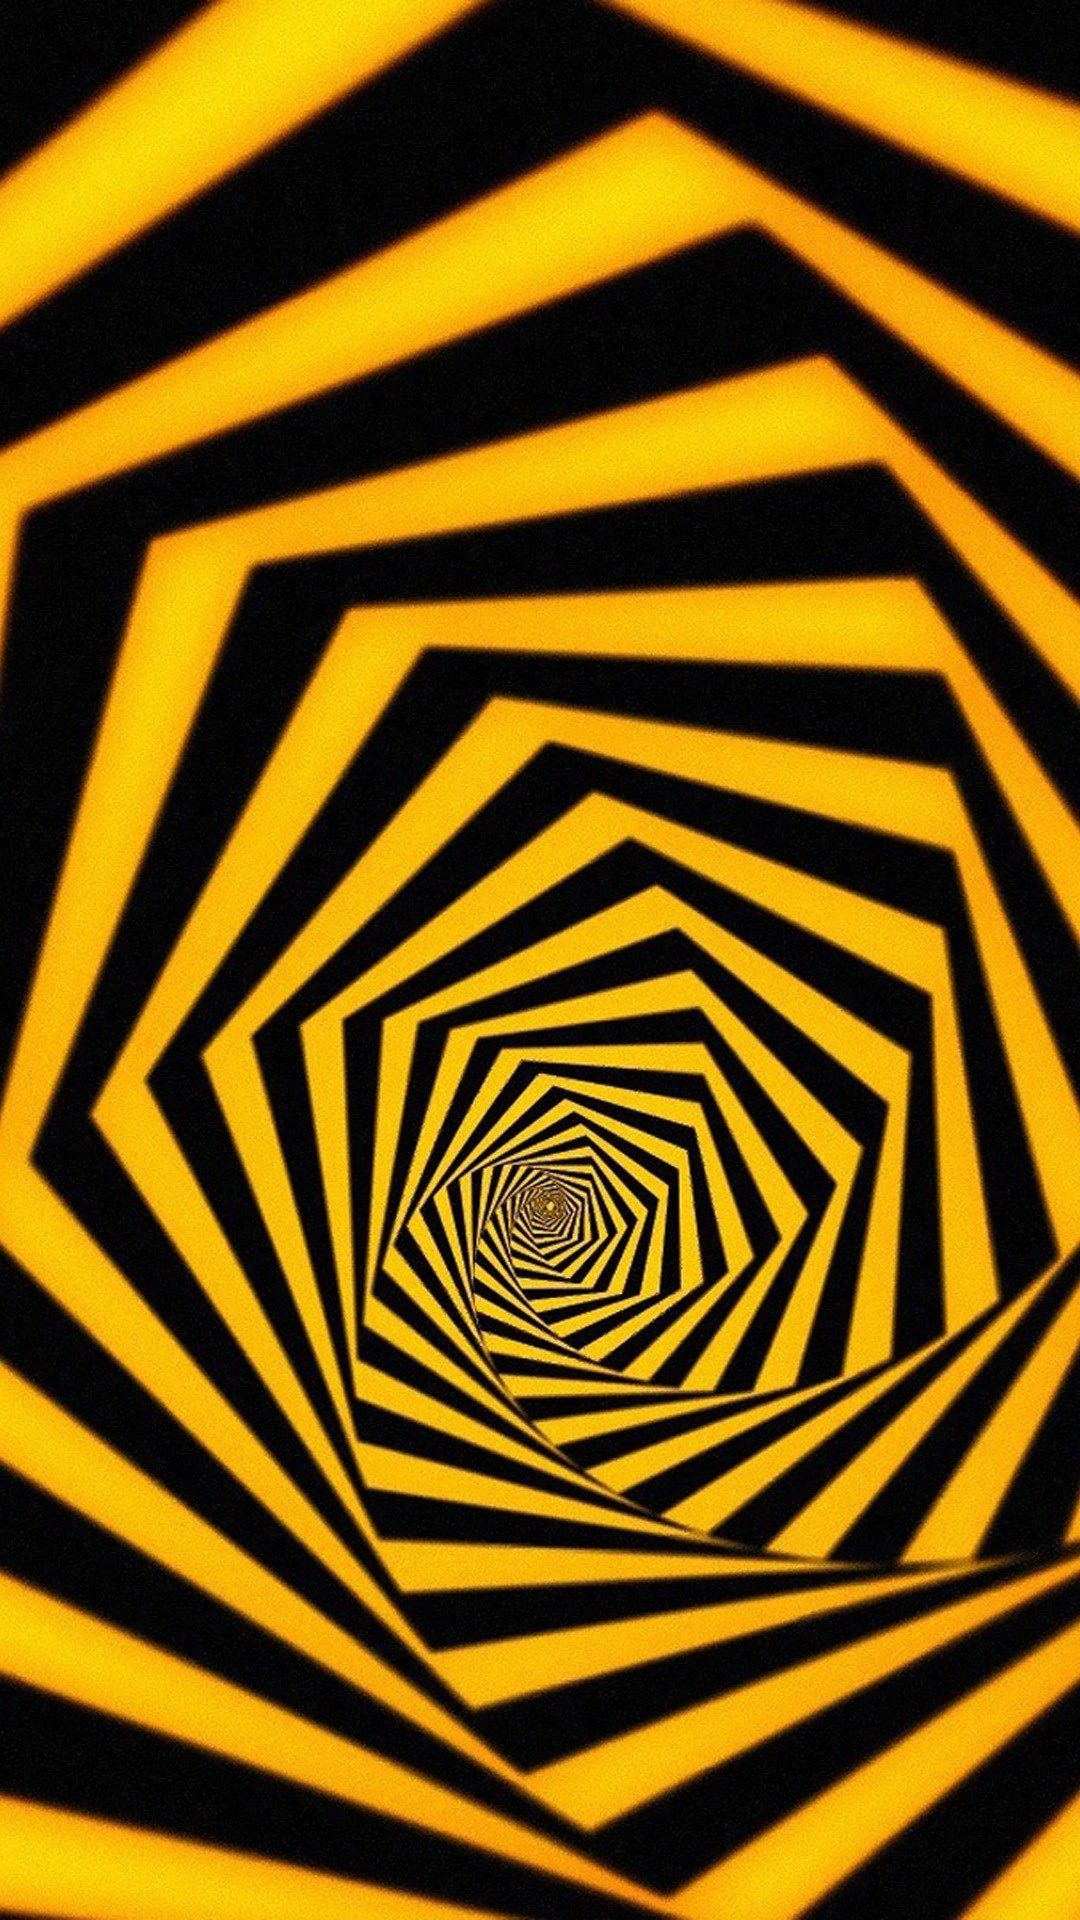 3d Iphone 5 6 7 Wallpapers Optical Illusion Wallpaper Optical Illusions Illusions